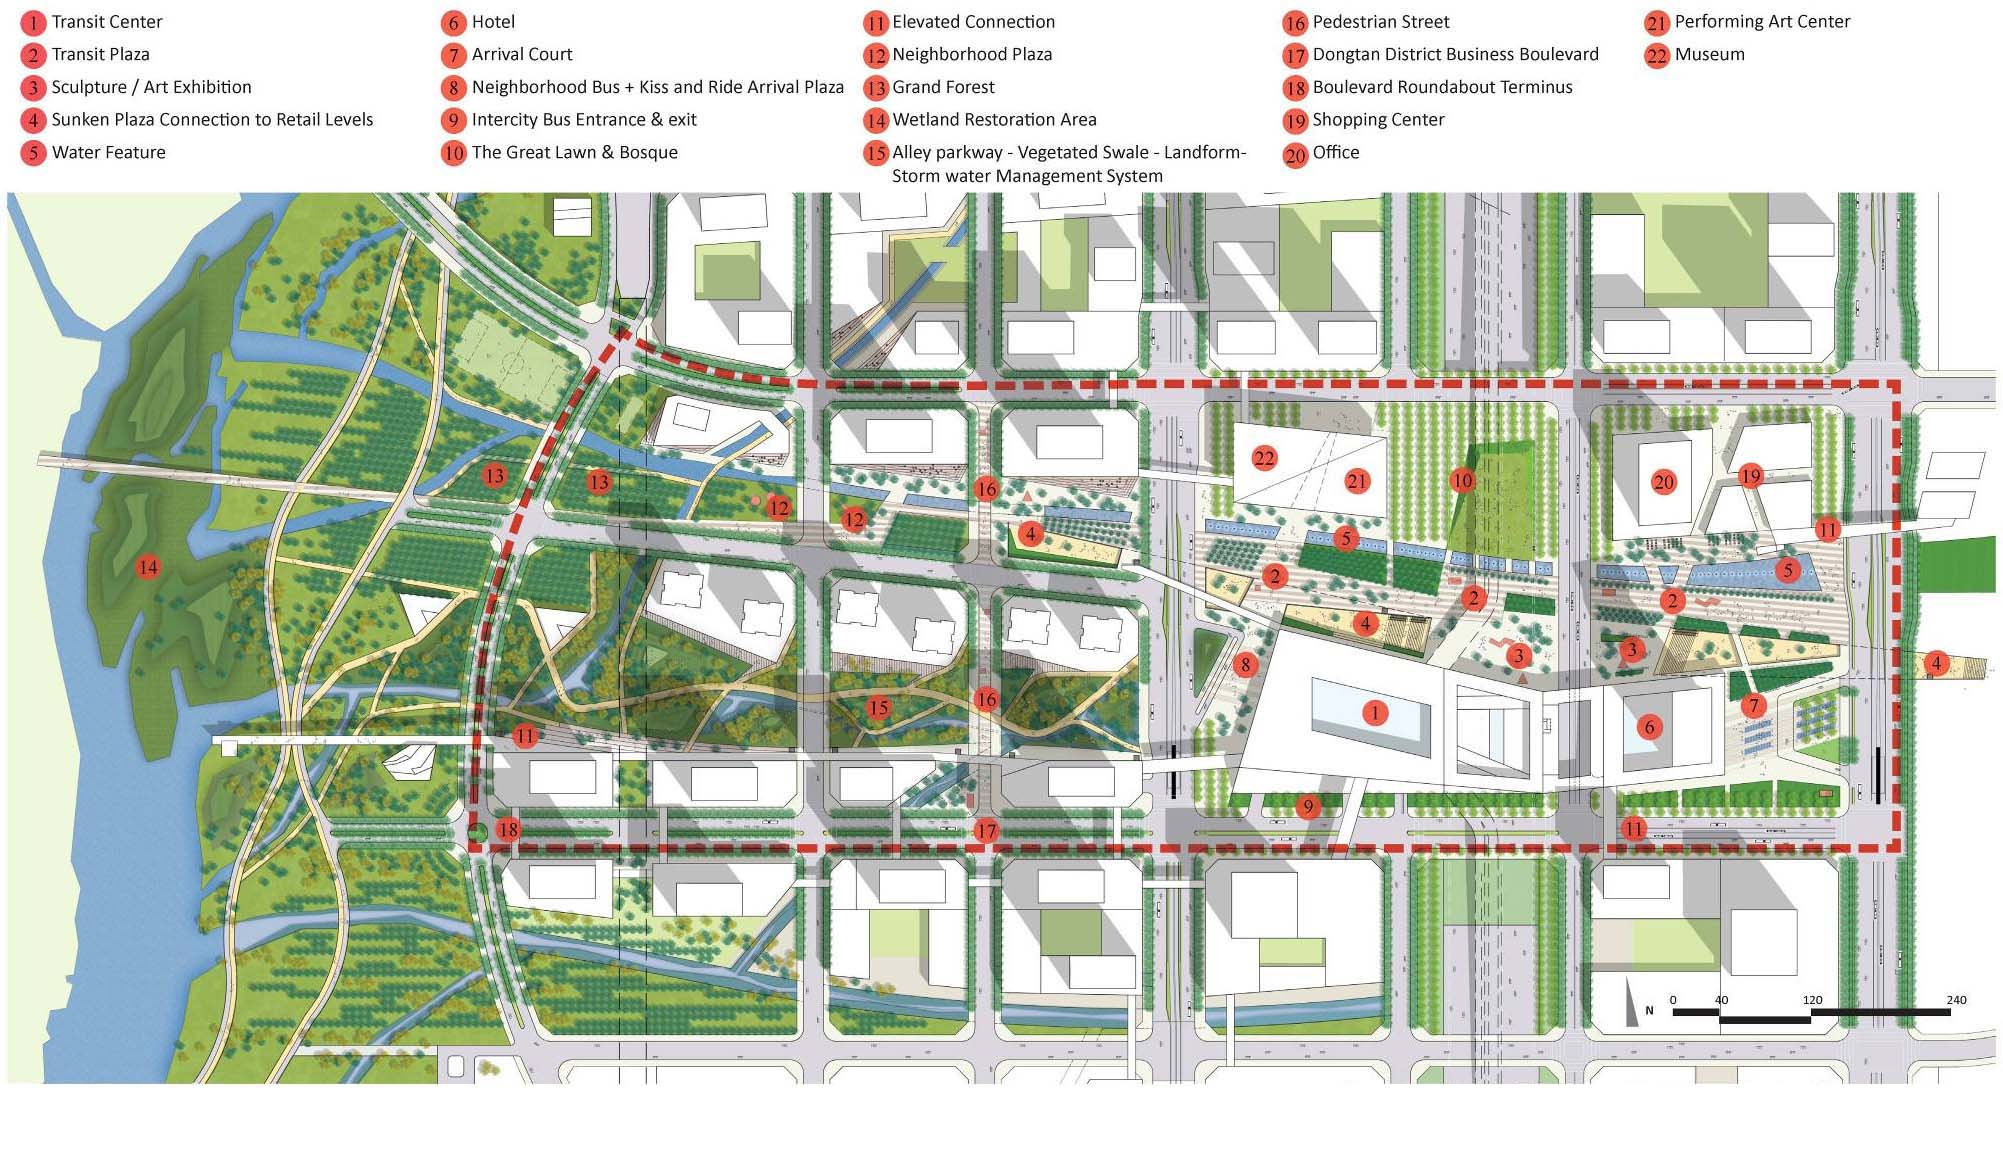 Transit oriented city dongtan central business master plan ojanen chiou architects swa Urban planning and design for the american city